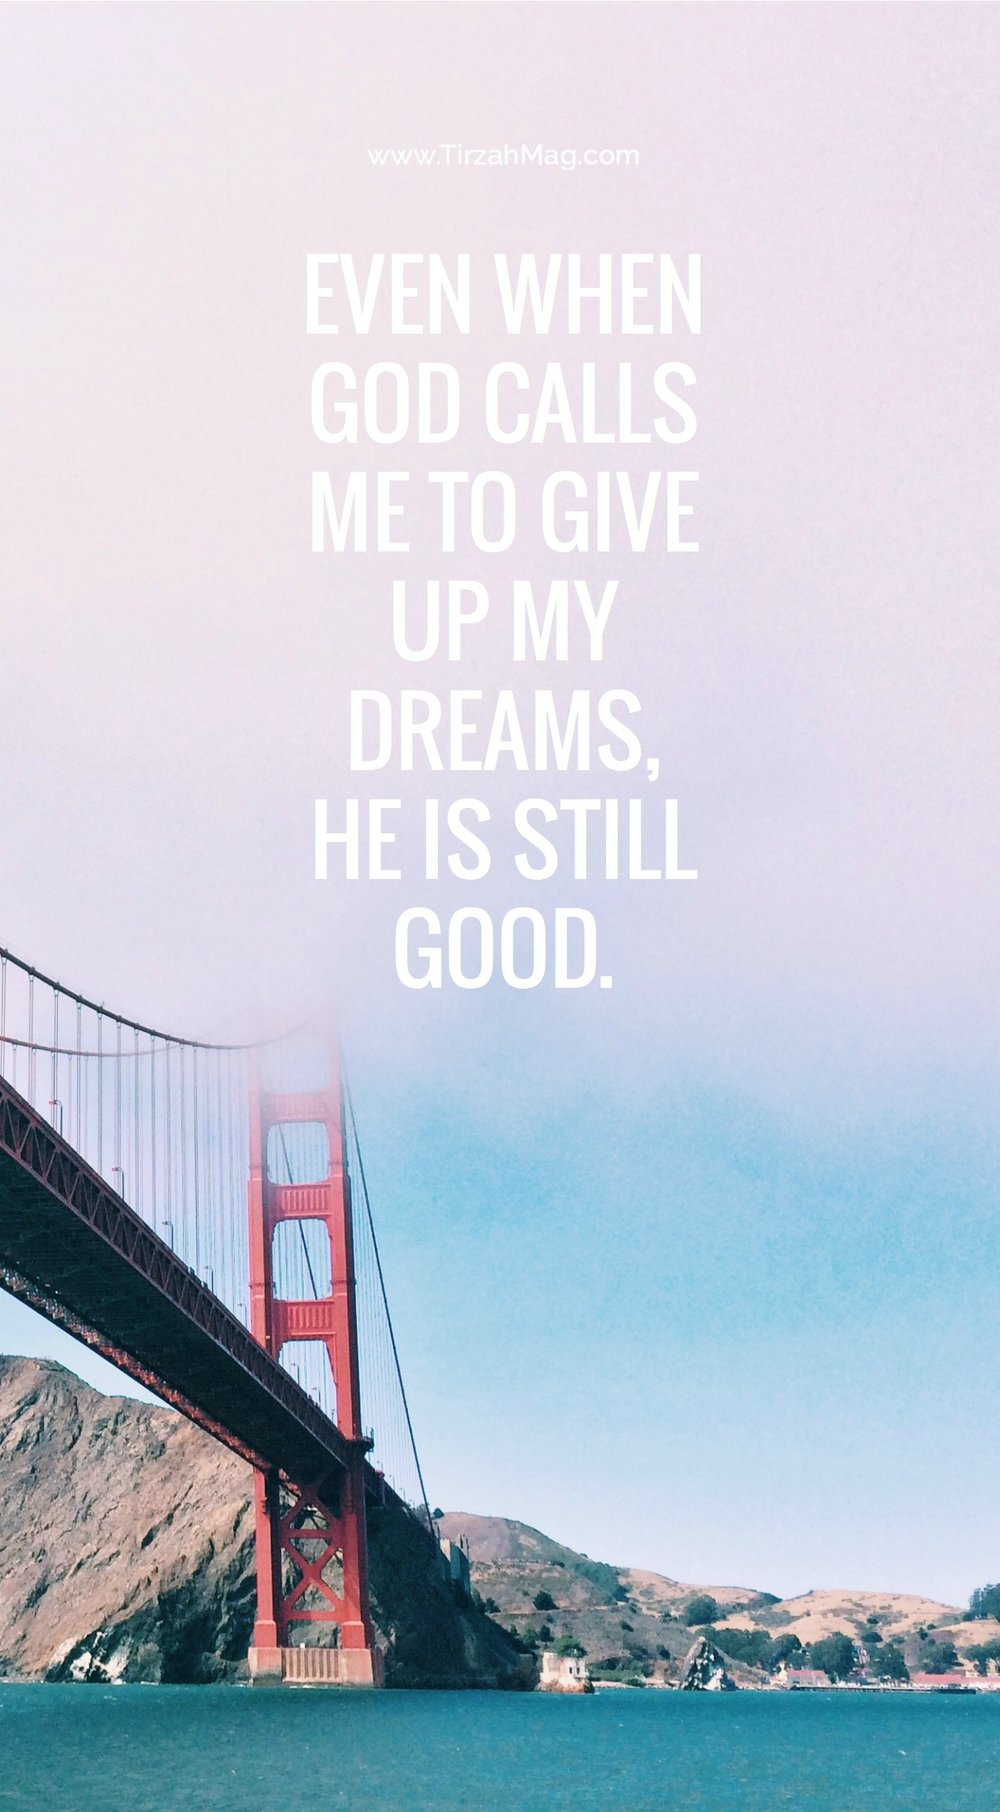 What to do when God calls you to give up your dreams